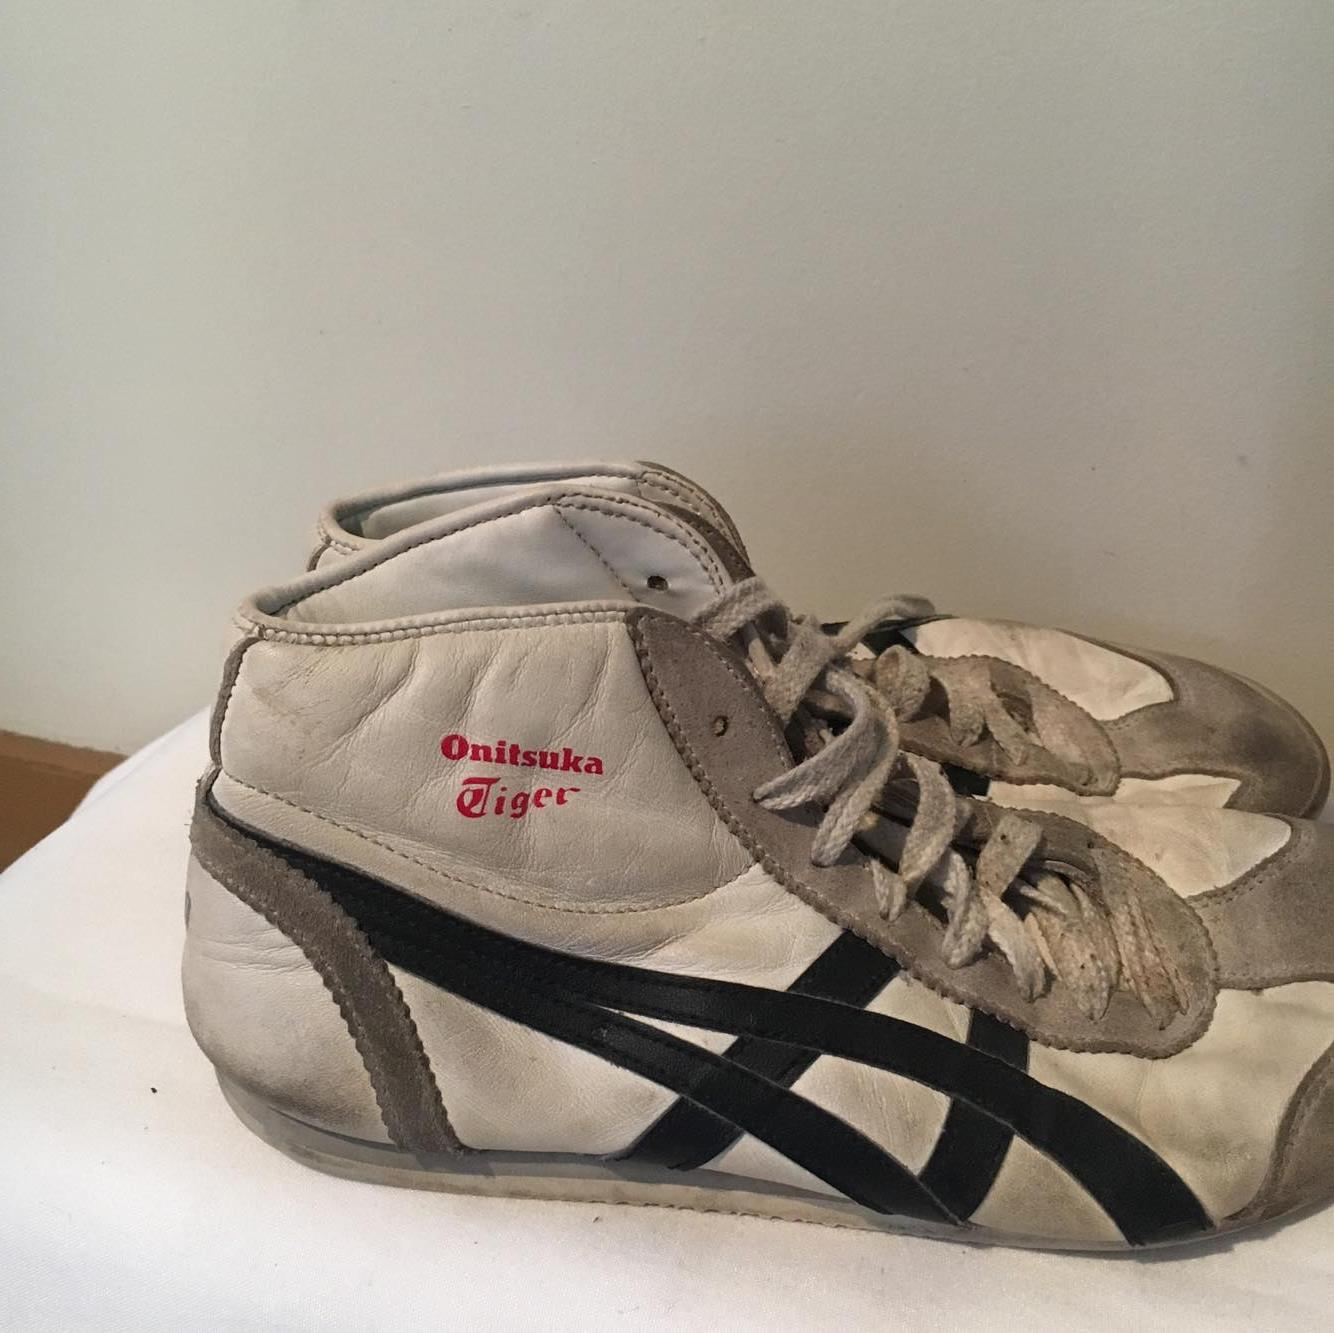 High Top Asic Onitsuka Tigers